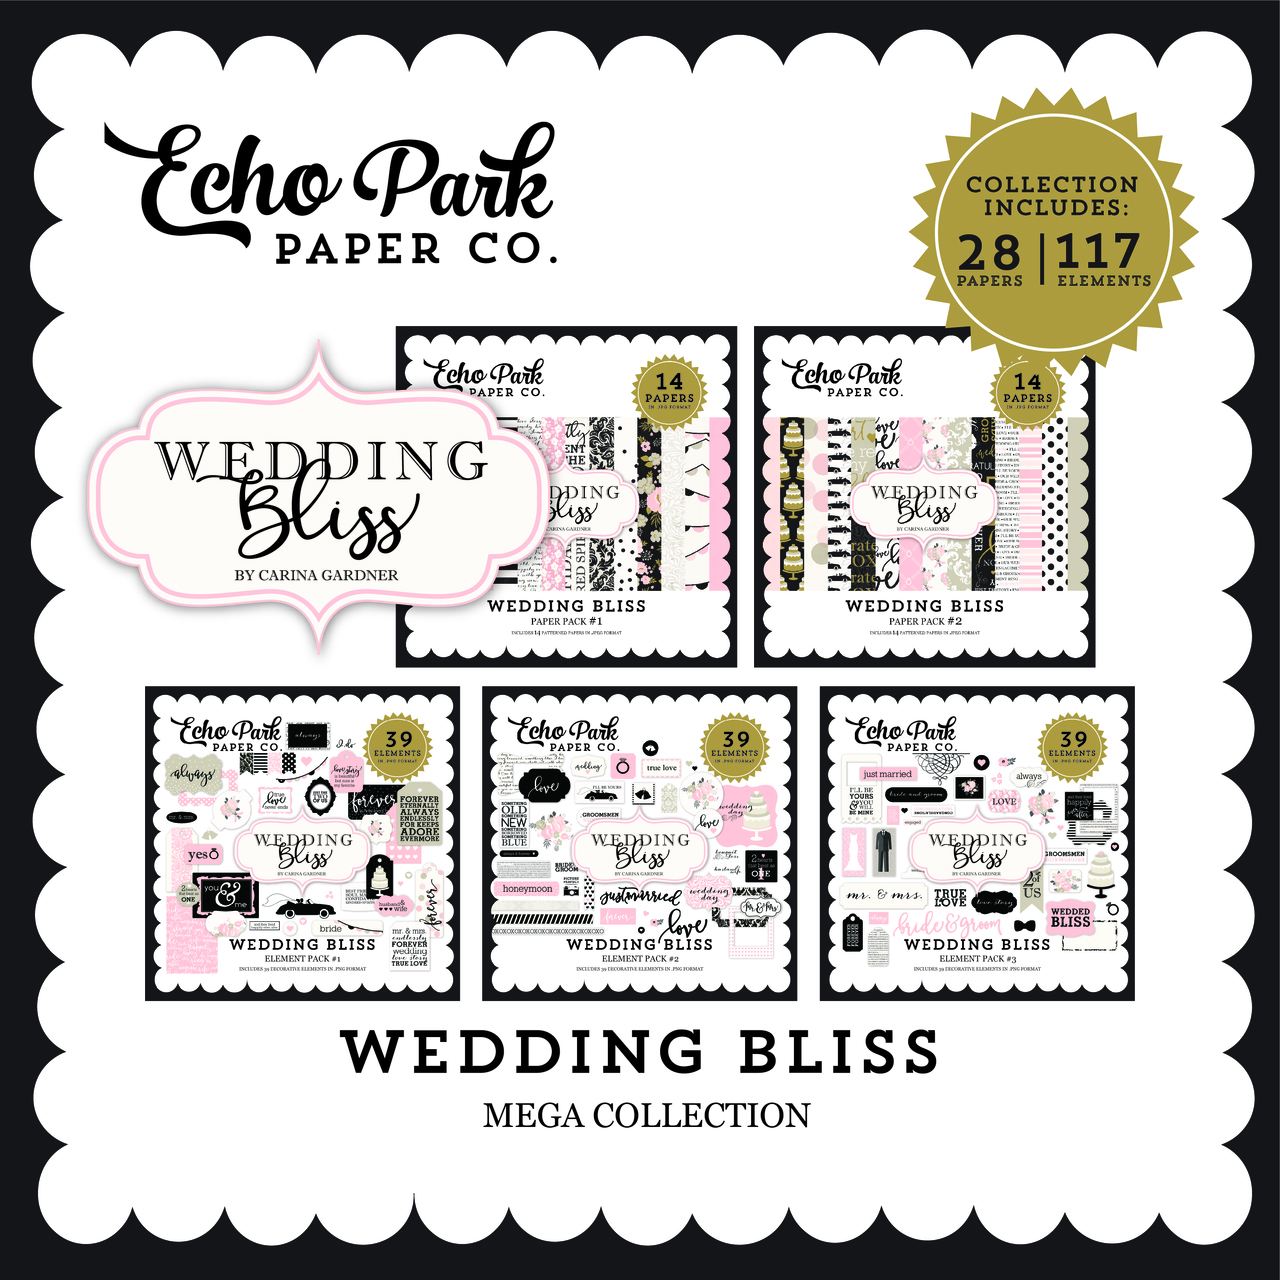 Wedding Bliss Mega Collection